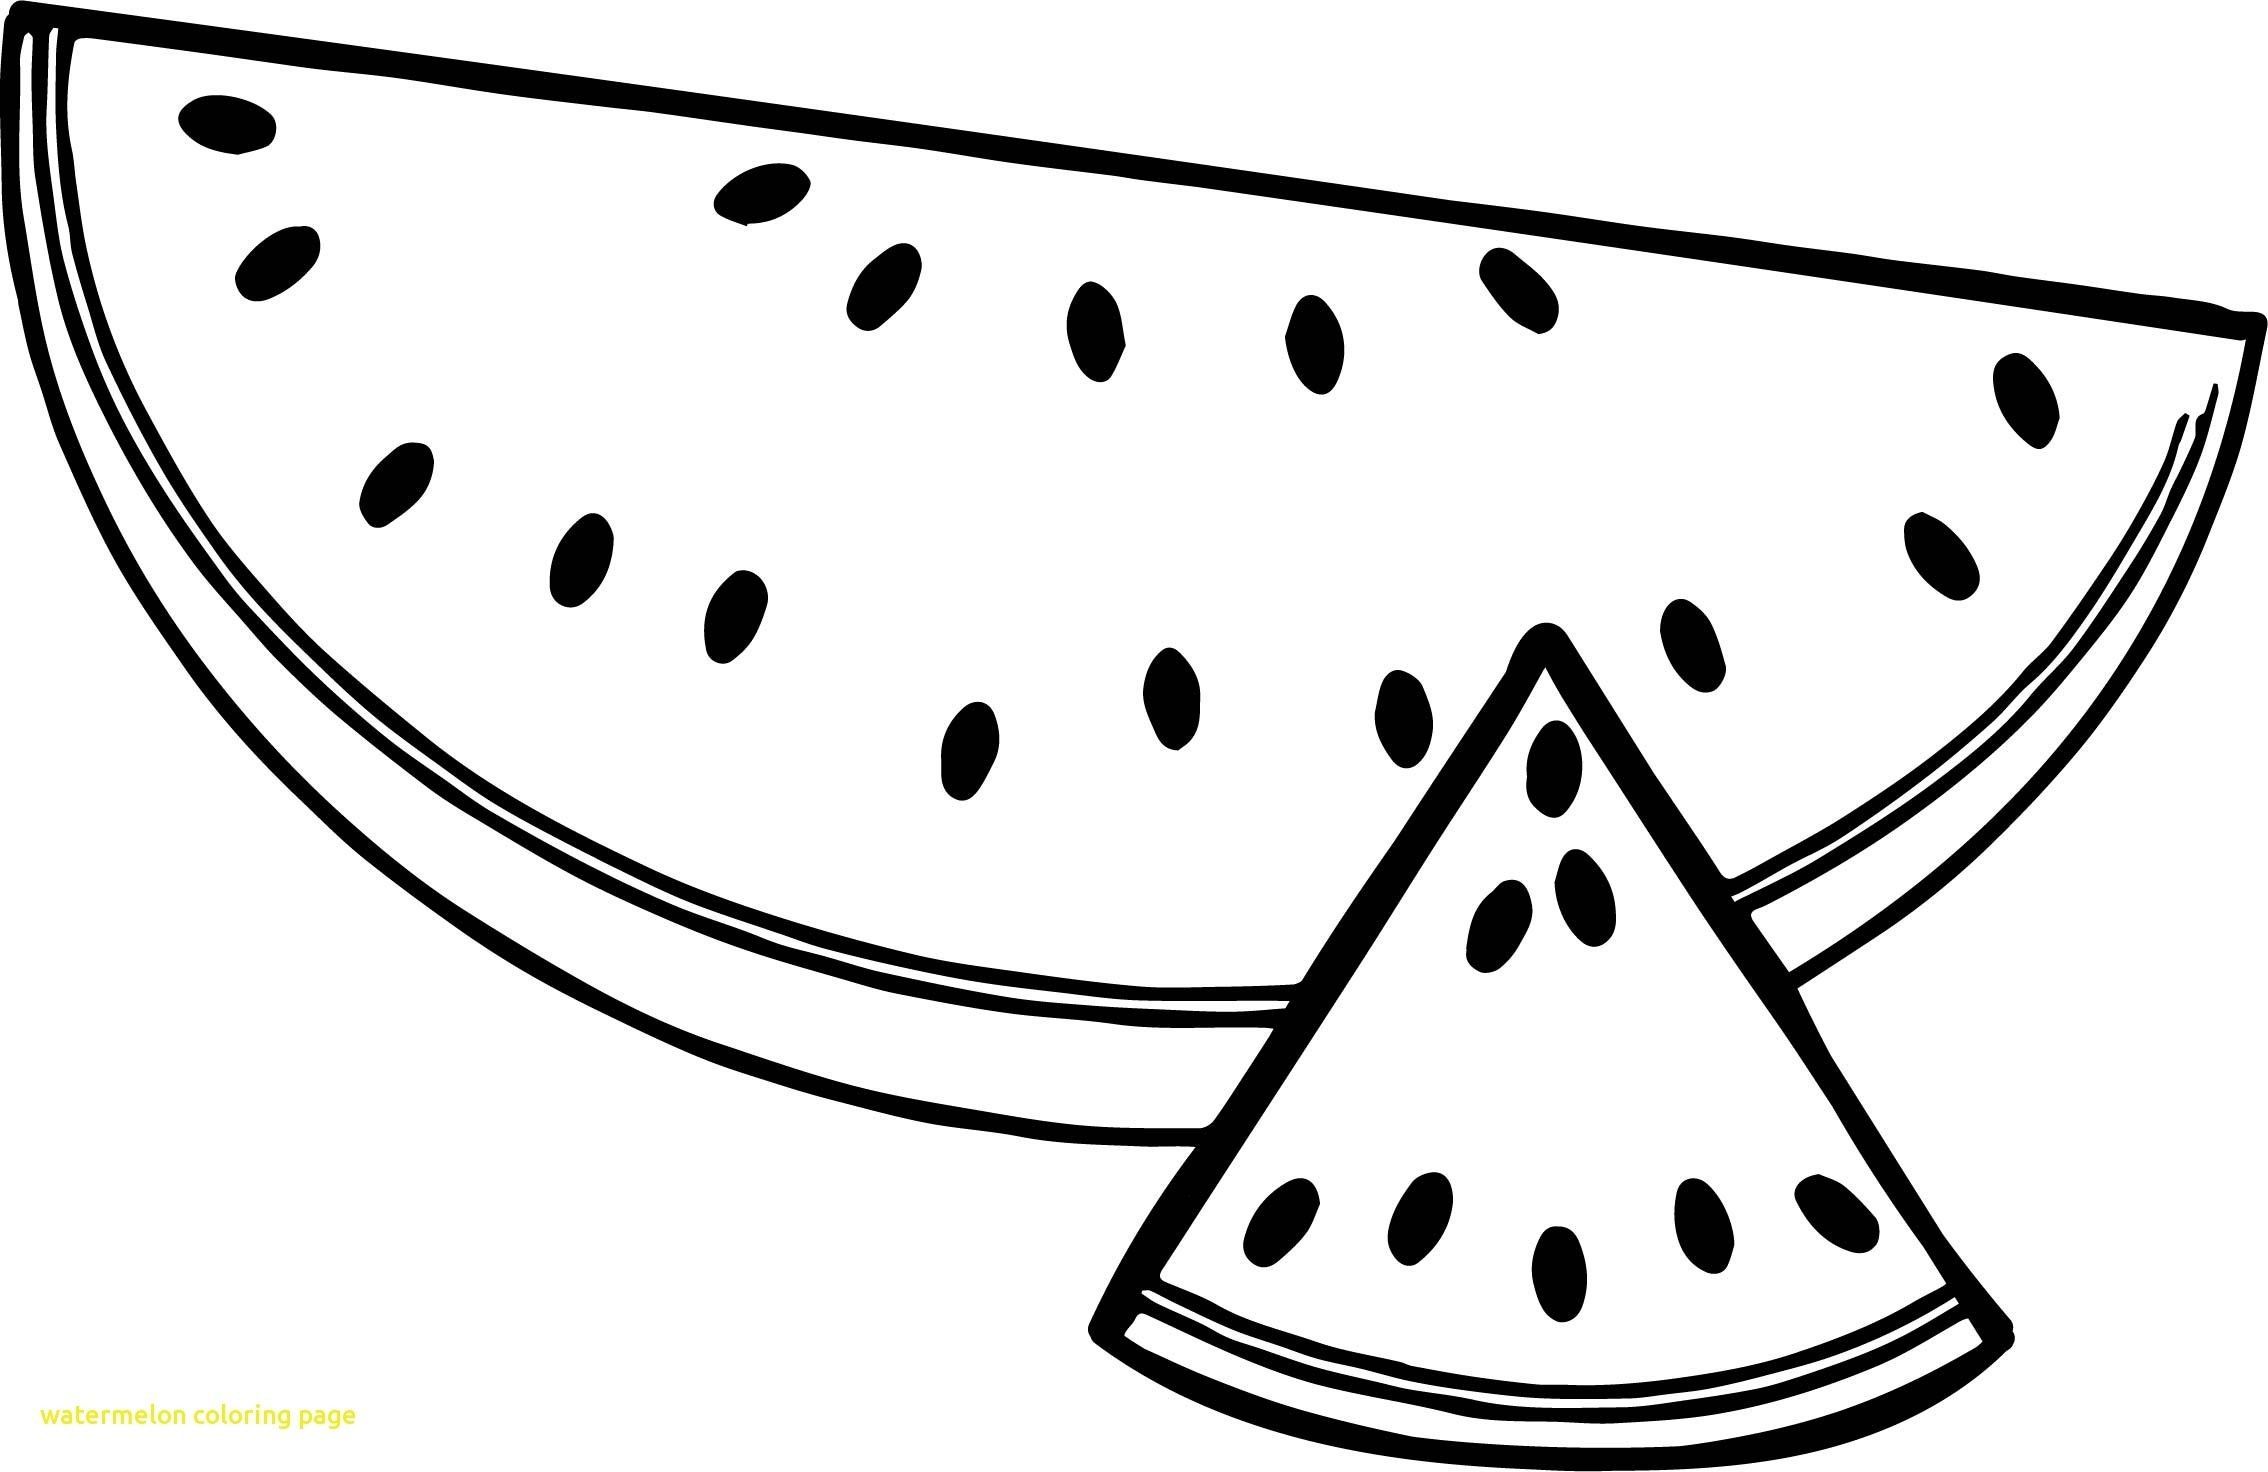 watermelon coloring images picture of watermelon coloring page coloring page blog images watermelon coloring